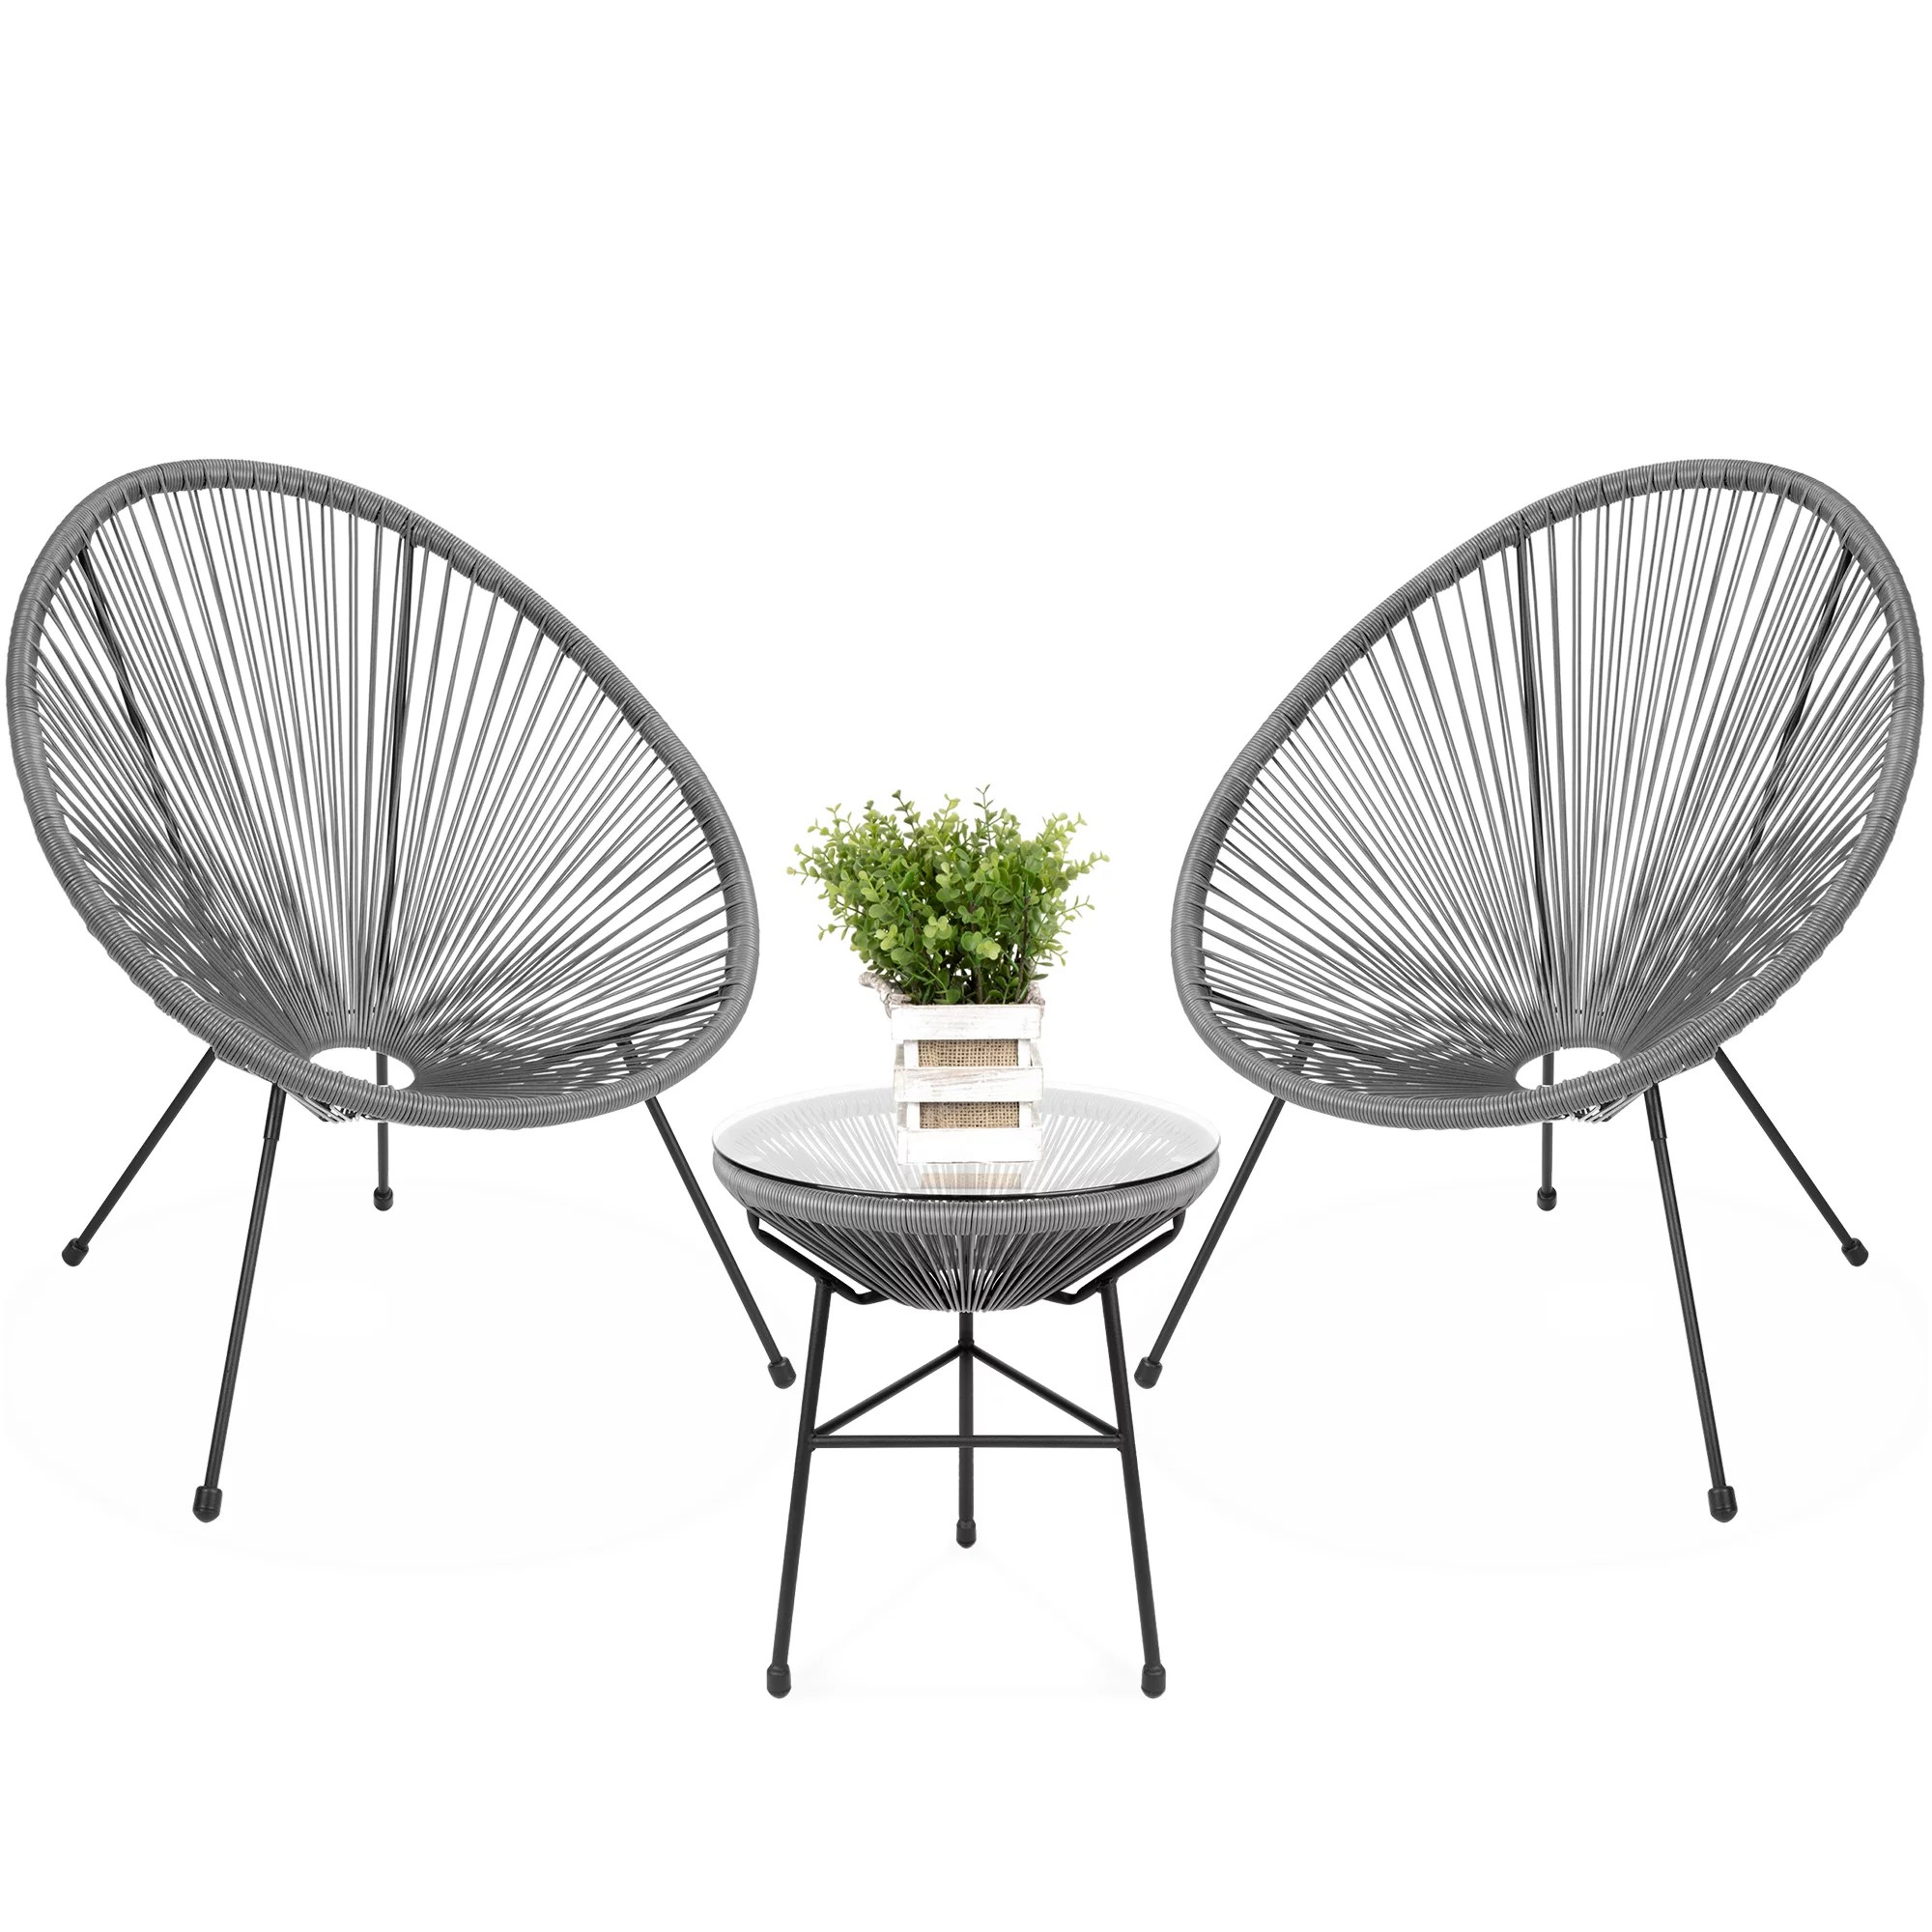 best choice products 3 piece all weather patio acapulco bistro furniture set w rope glass top table gray walmart com